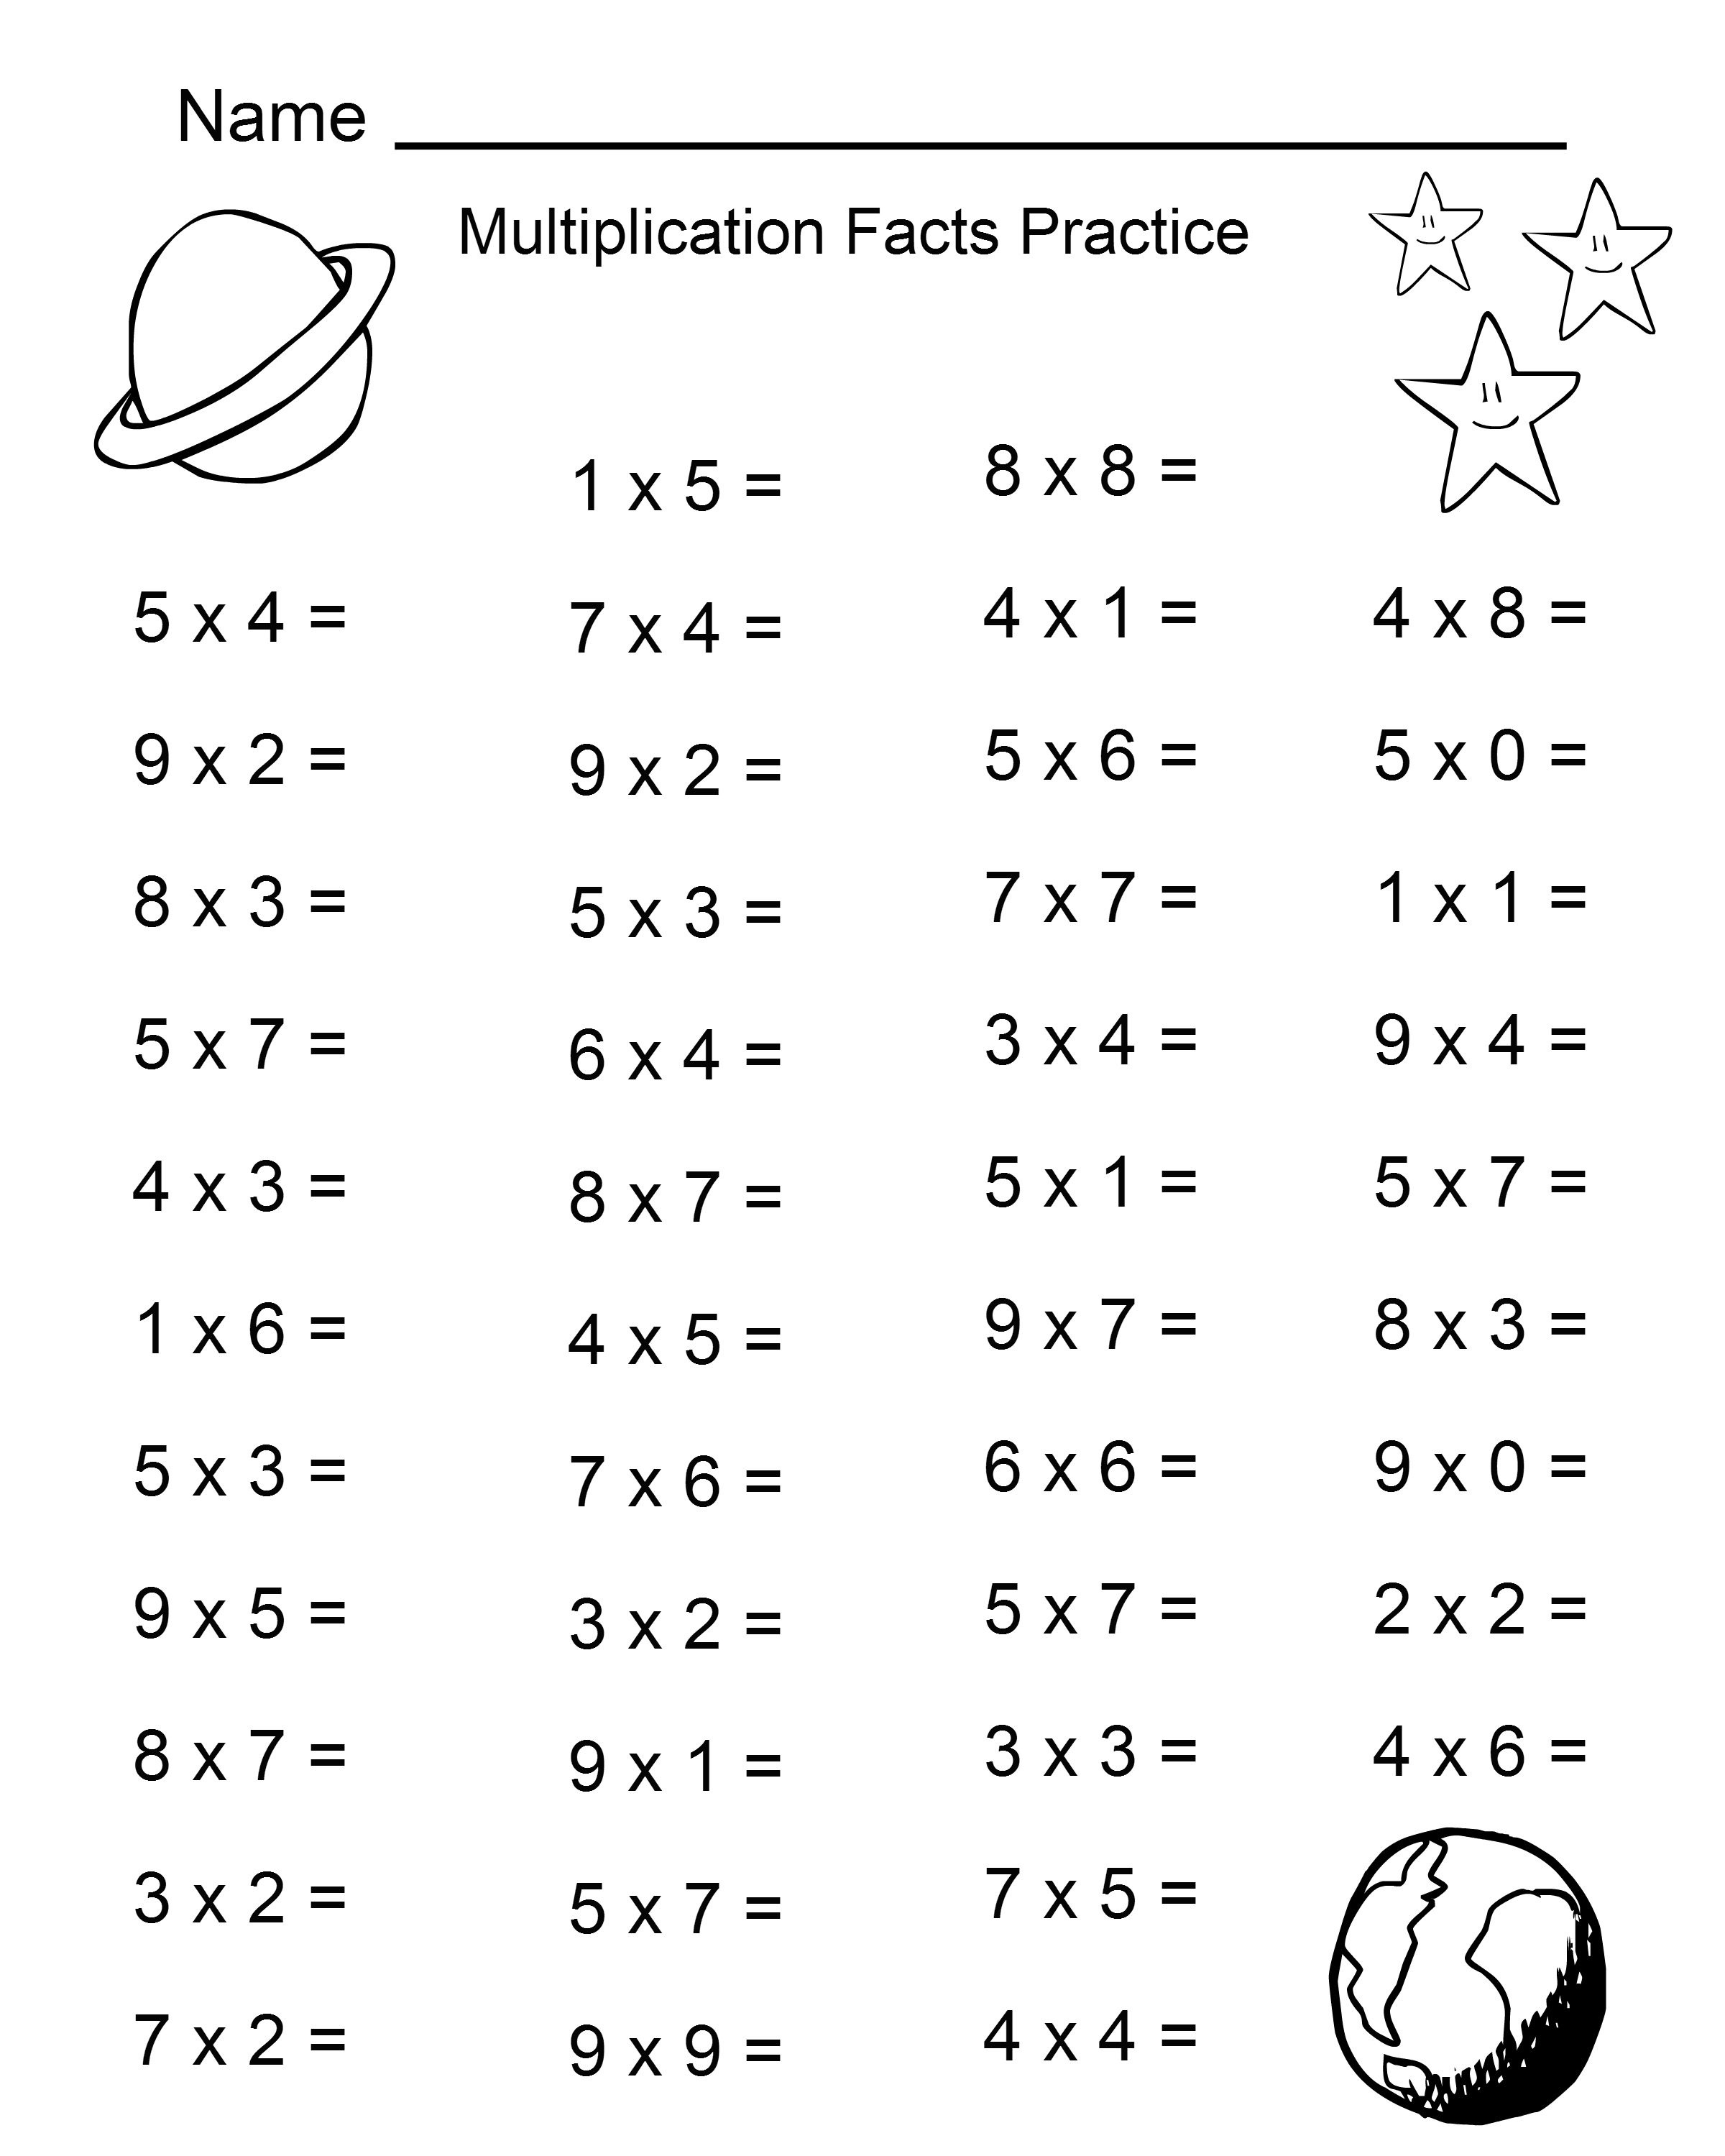 Space Theme - 4Th Grade Math Practice Sheets - Multiplication Facts - Free Printable Multiplication Fact Sheets